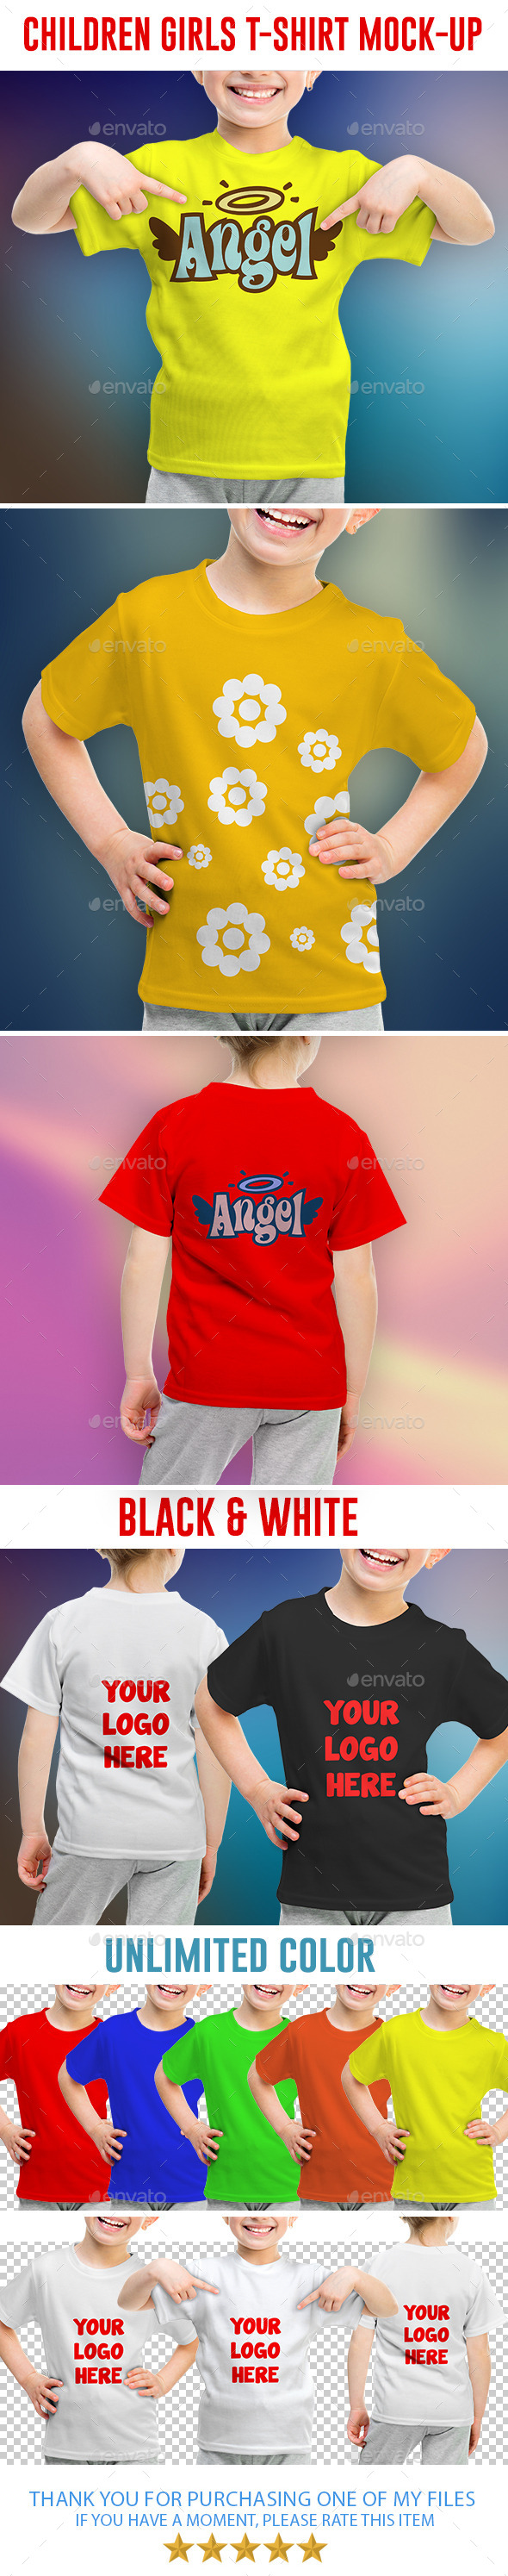 Children Girls T-shirt Mock-Up